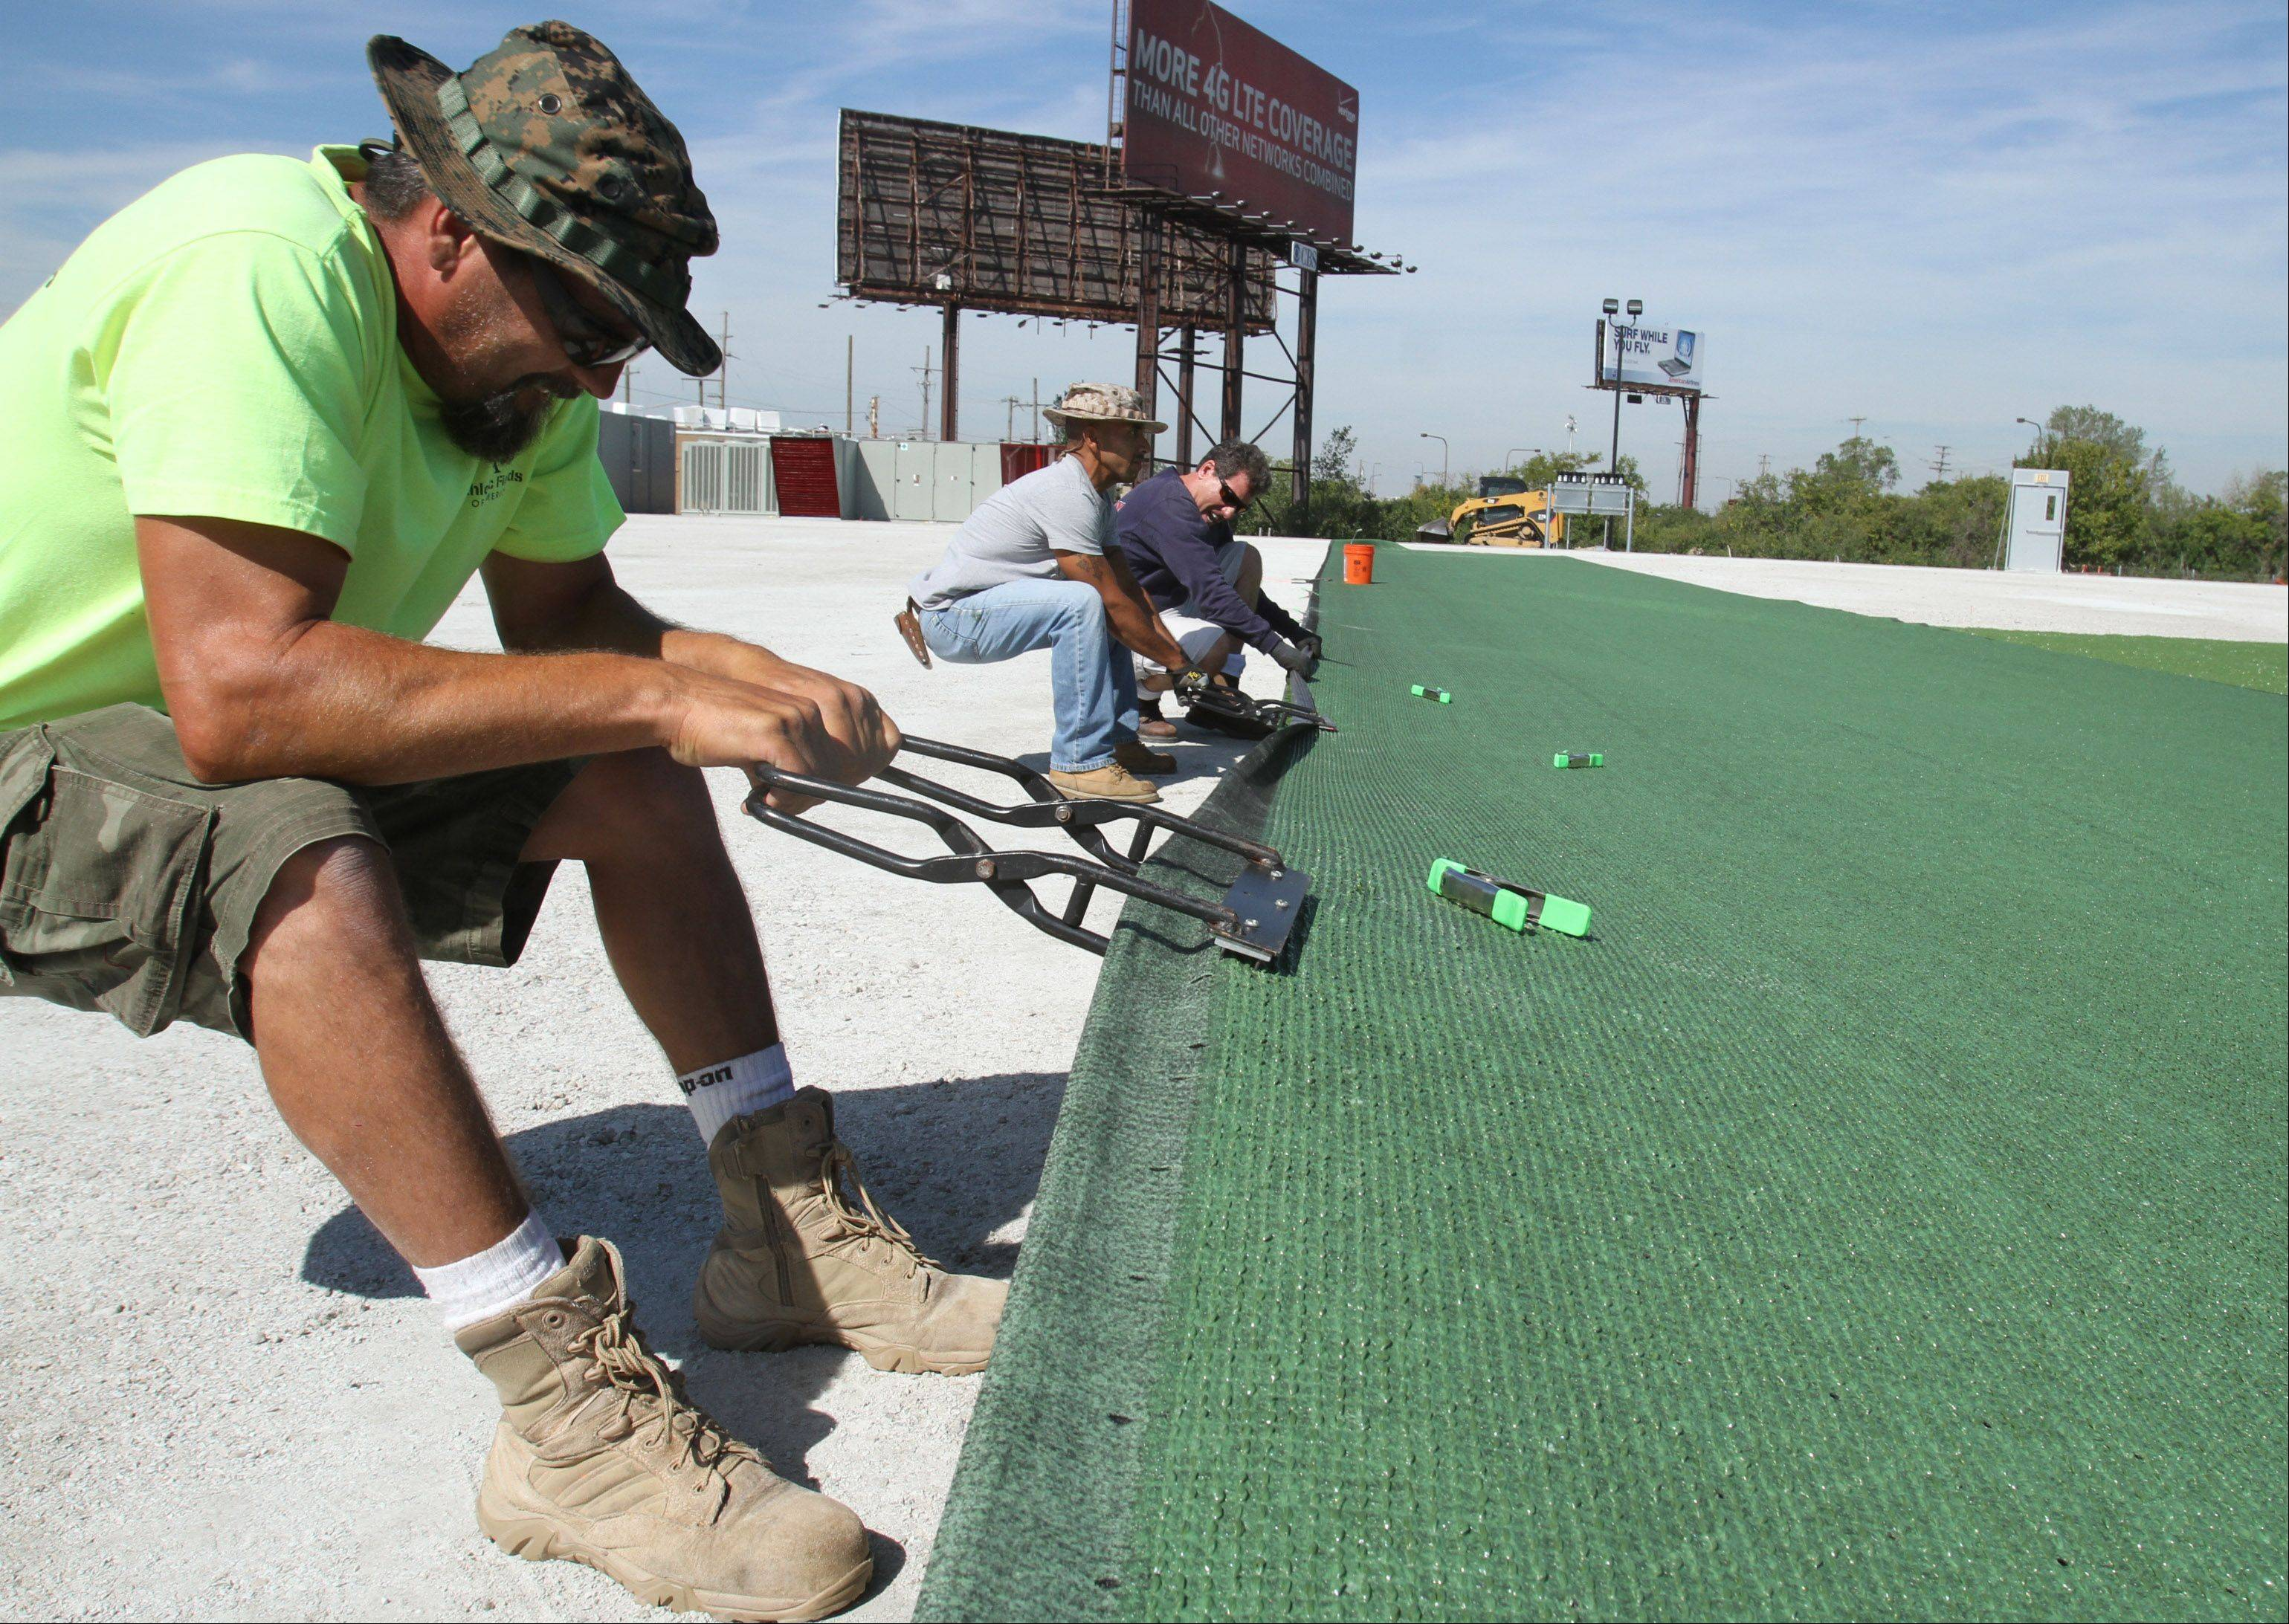 Steven Dills with Athletic Fields of America, foreground, pulls and stretches artificial turf Wednesday for a new indoor athletic training facility in Rosemont.